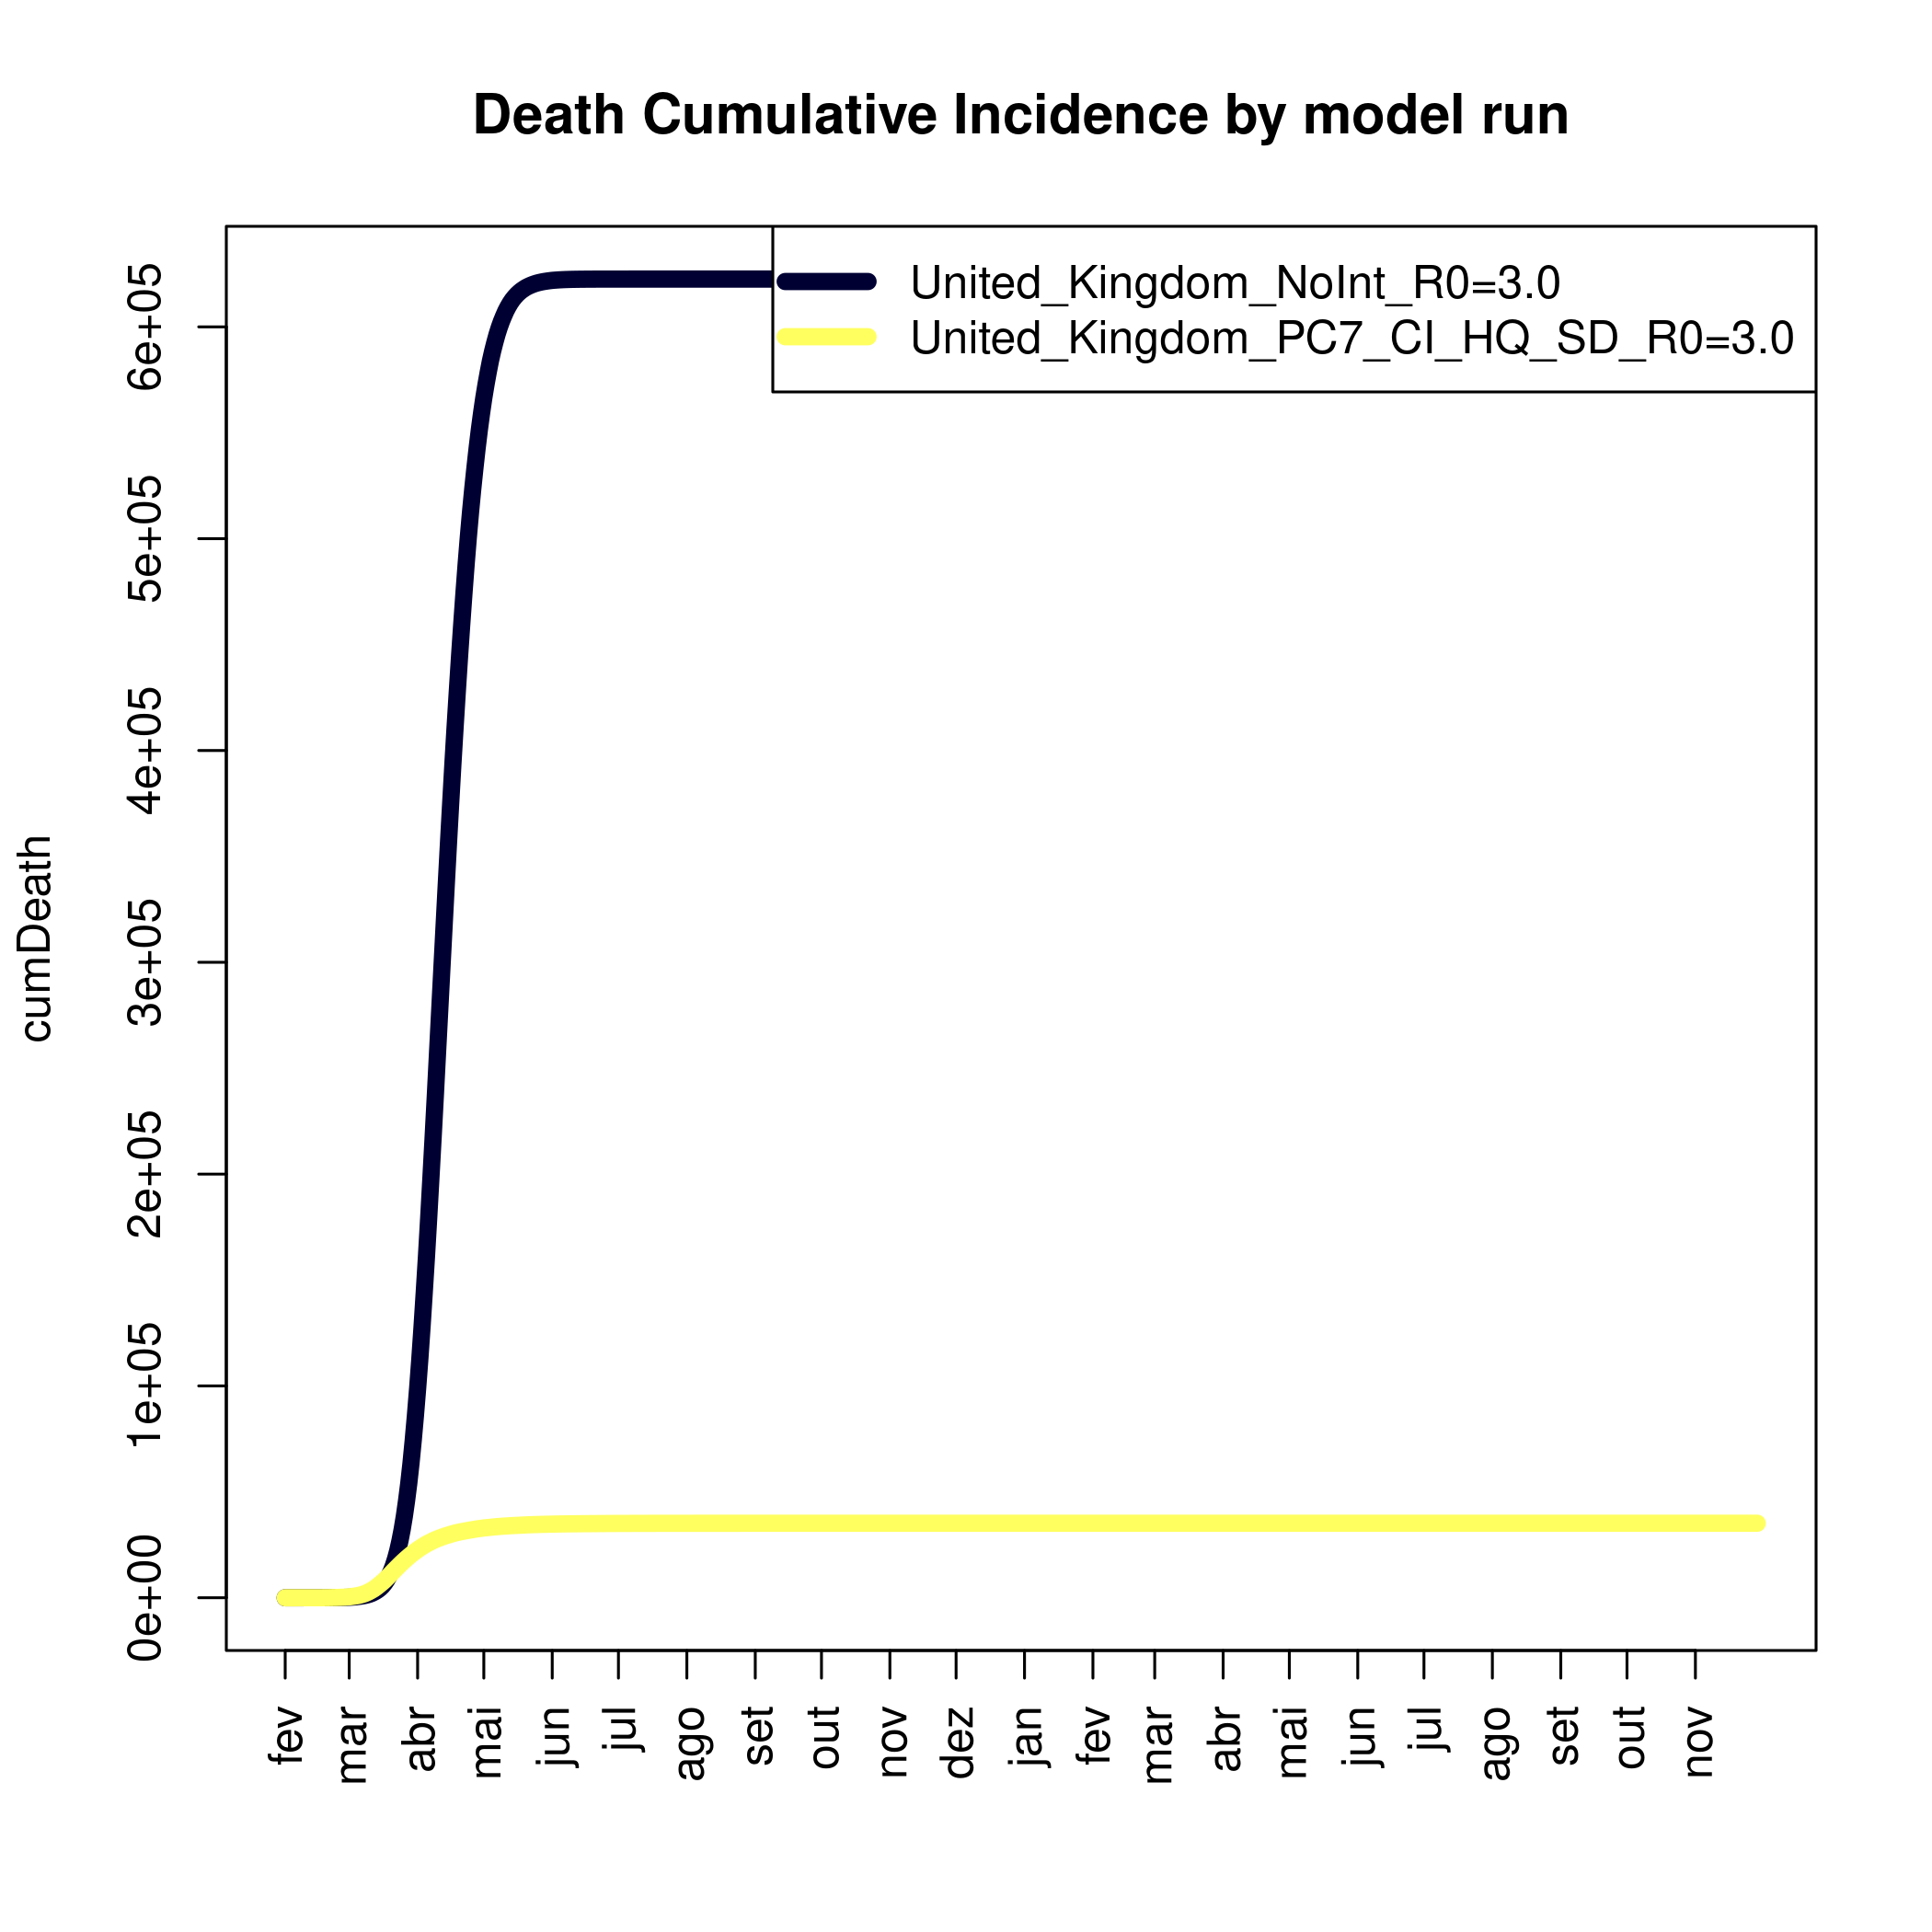 Death Cumulative Incidence